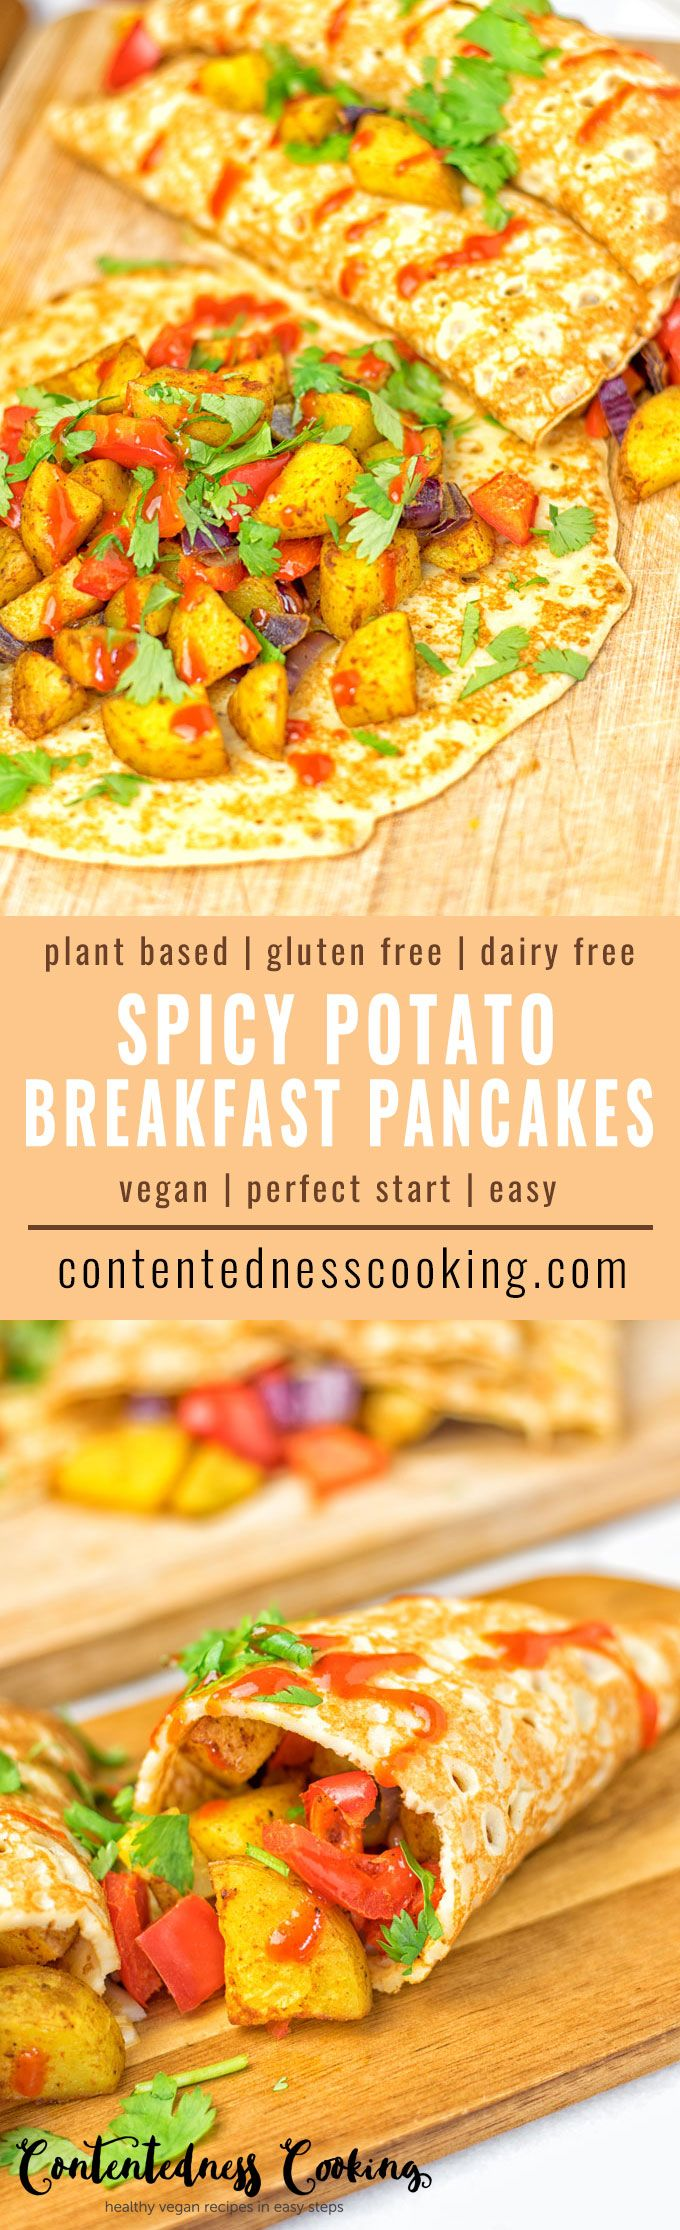 These Spicy Potato Breakfast Pancakes are entirely vegan and gluten free. So full of incredible flavors. An awesome dairy free alternative to regular pancakes. Not only for breakfast, even for lunch or dinner a must make! #vegan #glutenfree #plantbased #dairyfree